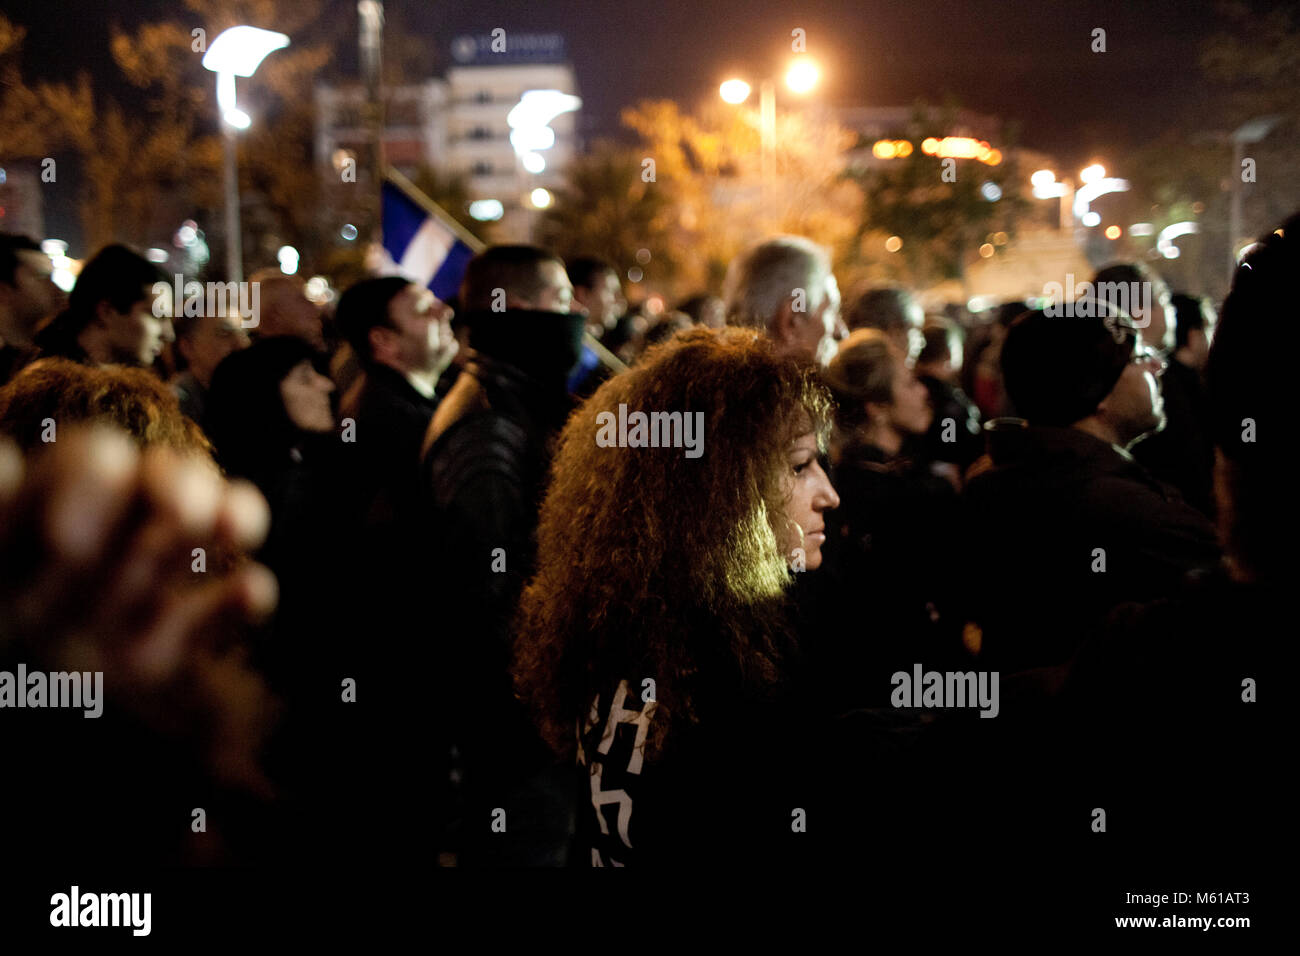 -  16/12/2012  -  Athens  -  A crowd is gathered in Nikaia, a suburb of Athens, where a Golden Dawn demonstration - Stock Image